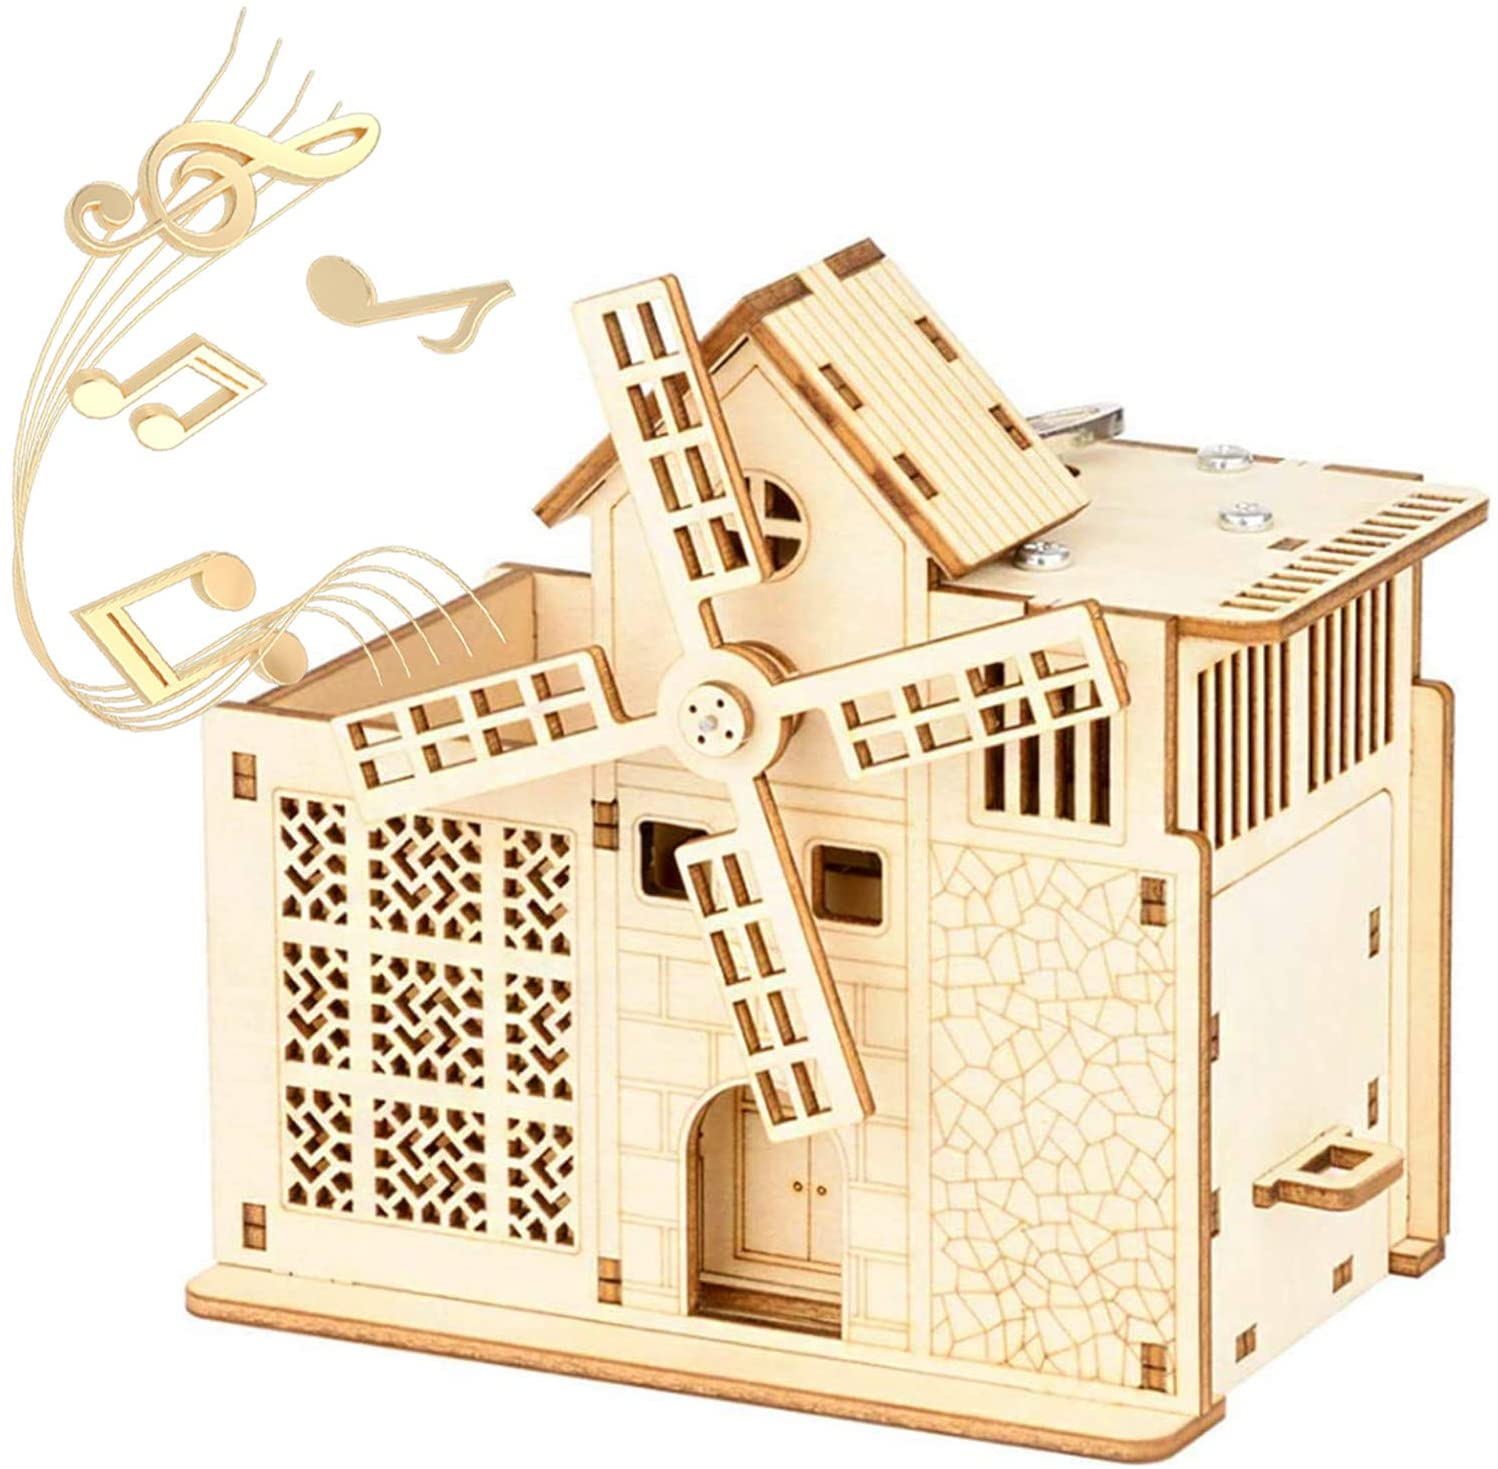 GeBogy Mechanical Music Box for Tune Castle in The Sky Pen Holder Storage Drawer 3D Wooden Assembly Puzzle Windmill DIY Wood Multi-Functions Toy As Gifts for Kids Adults